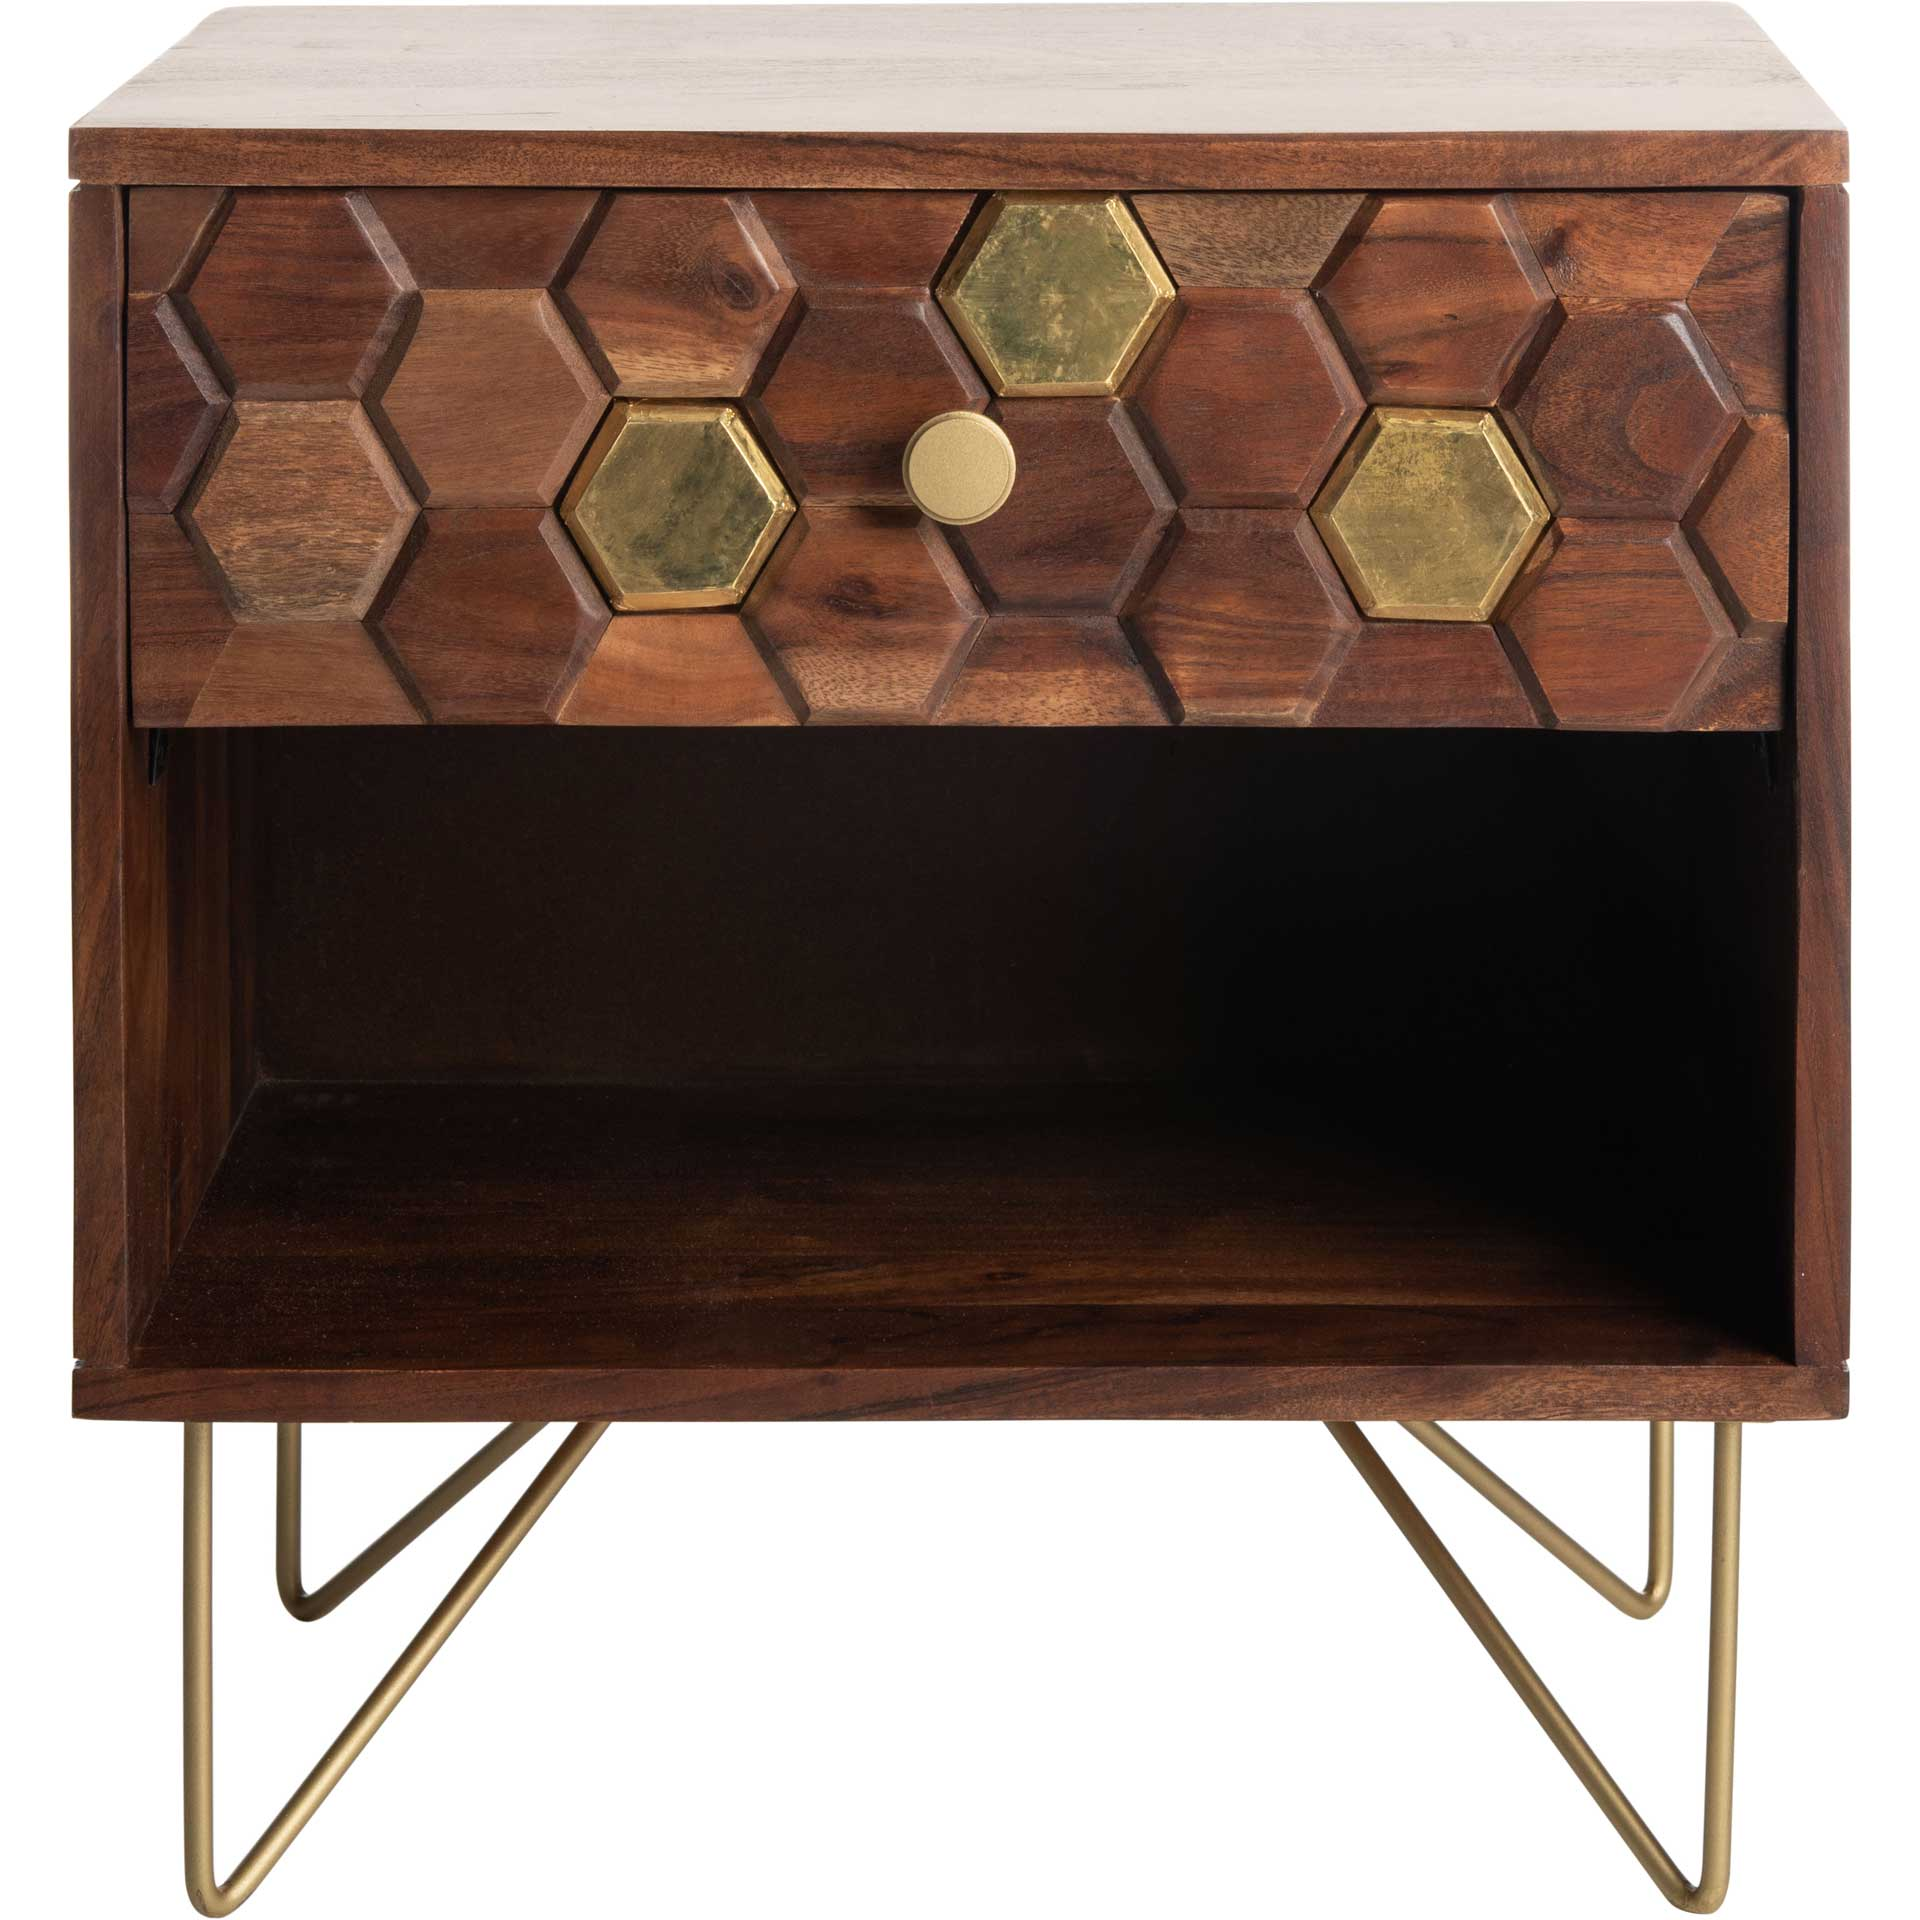 Ray Nightstand Mix Walnut/Brass